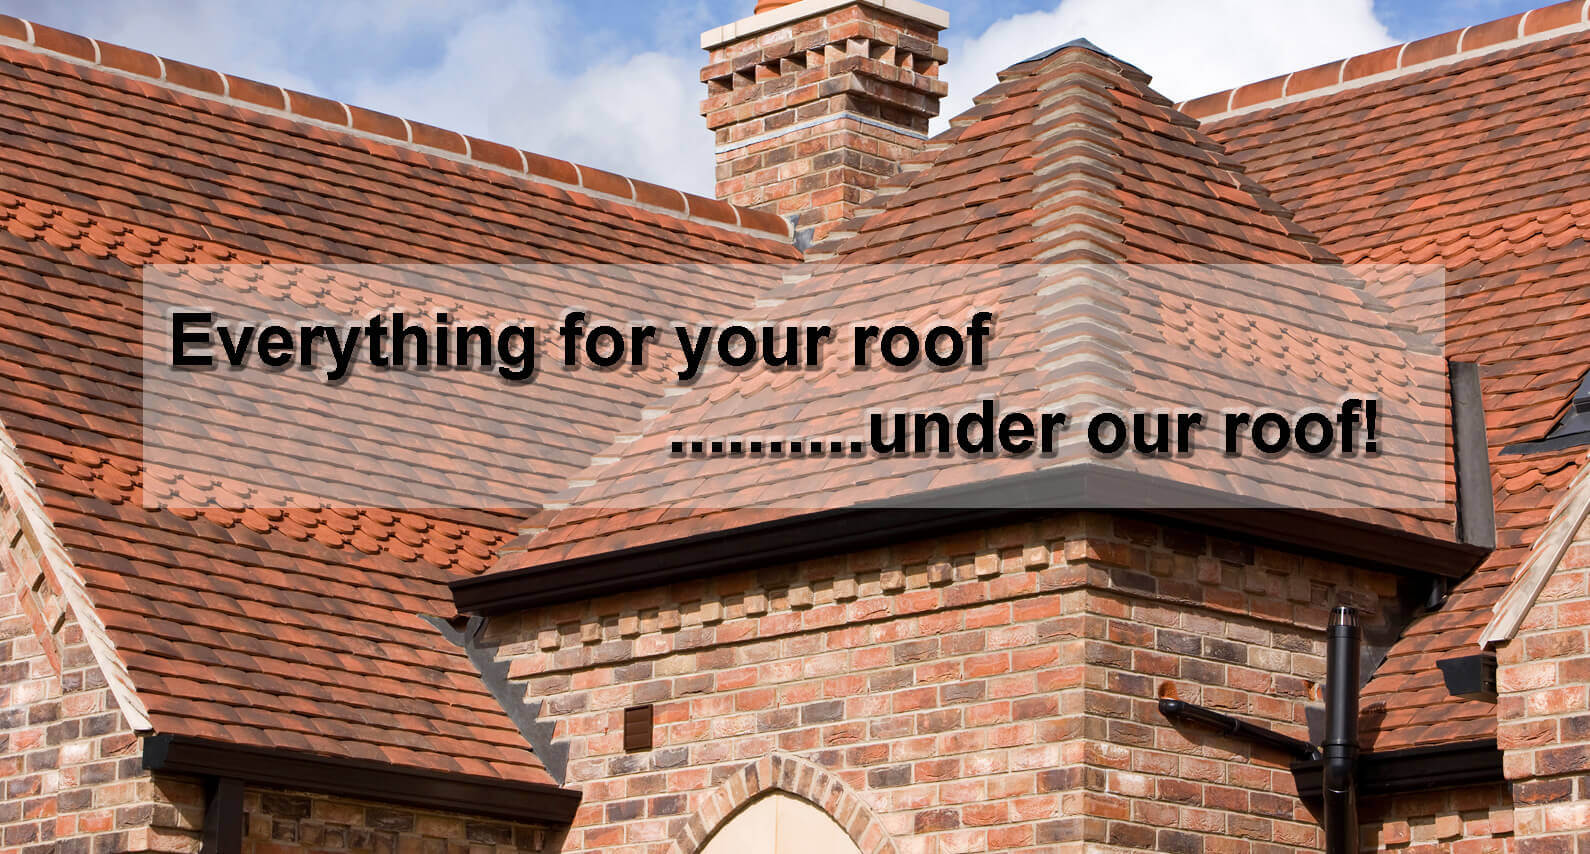 About Roofing Supplies - Everything For Your Roof Under Our Roof!